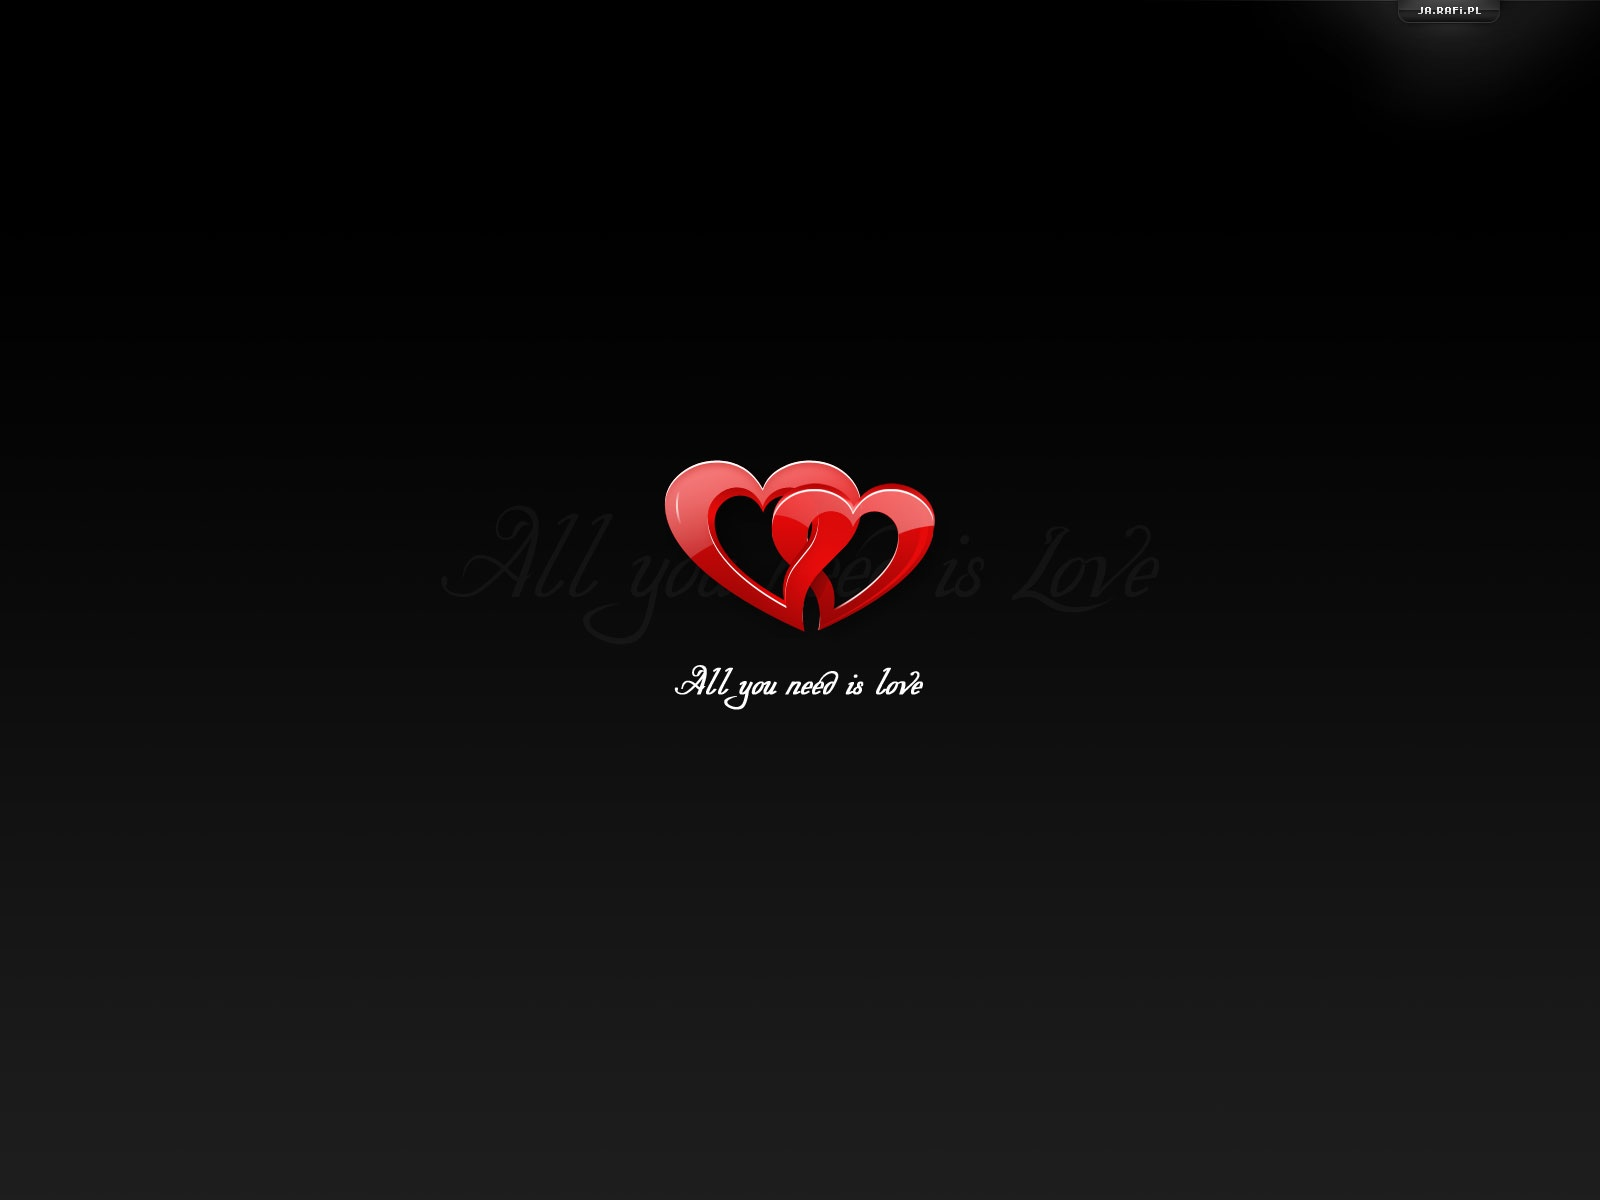 Love Is All Wallpaper : 1600x1200 All you need is love desktop Pc and Mac wallpaper